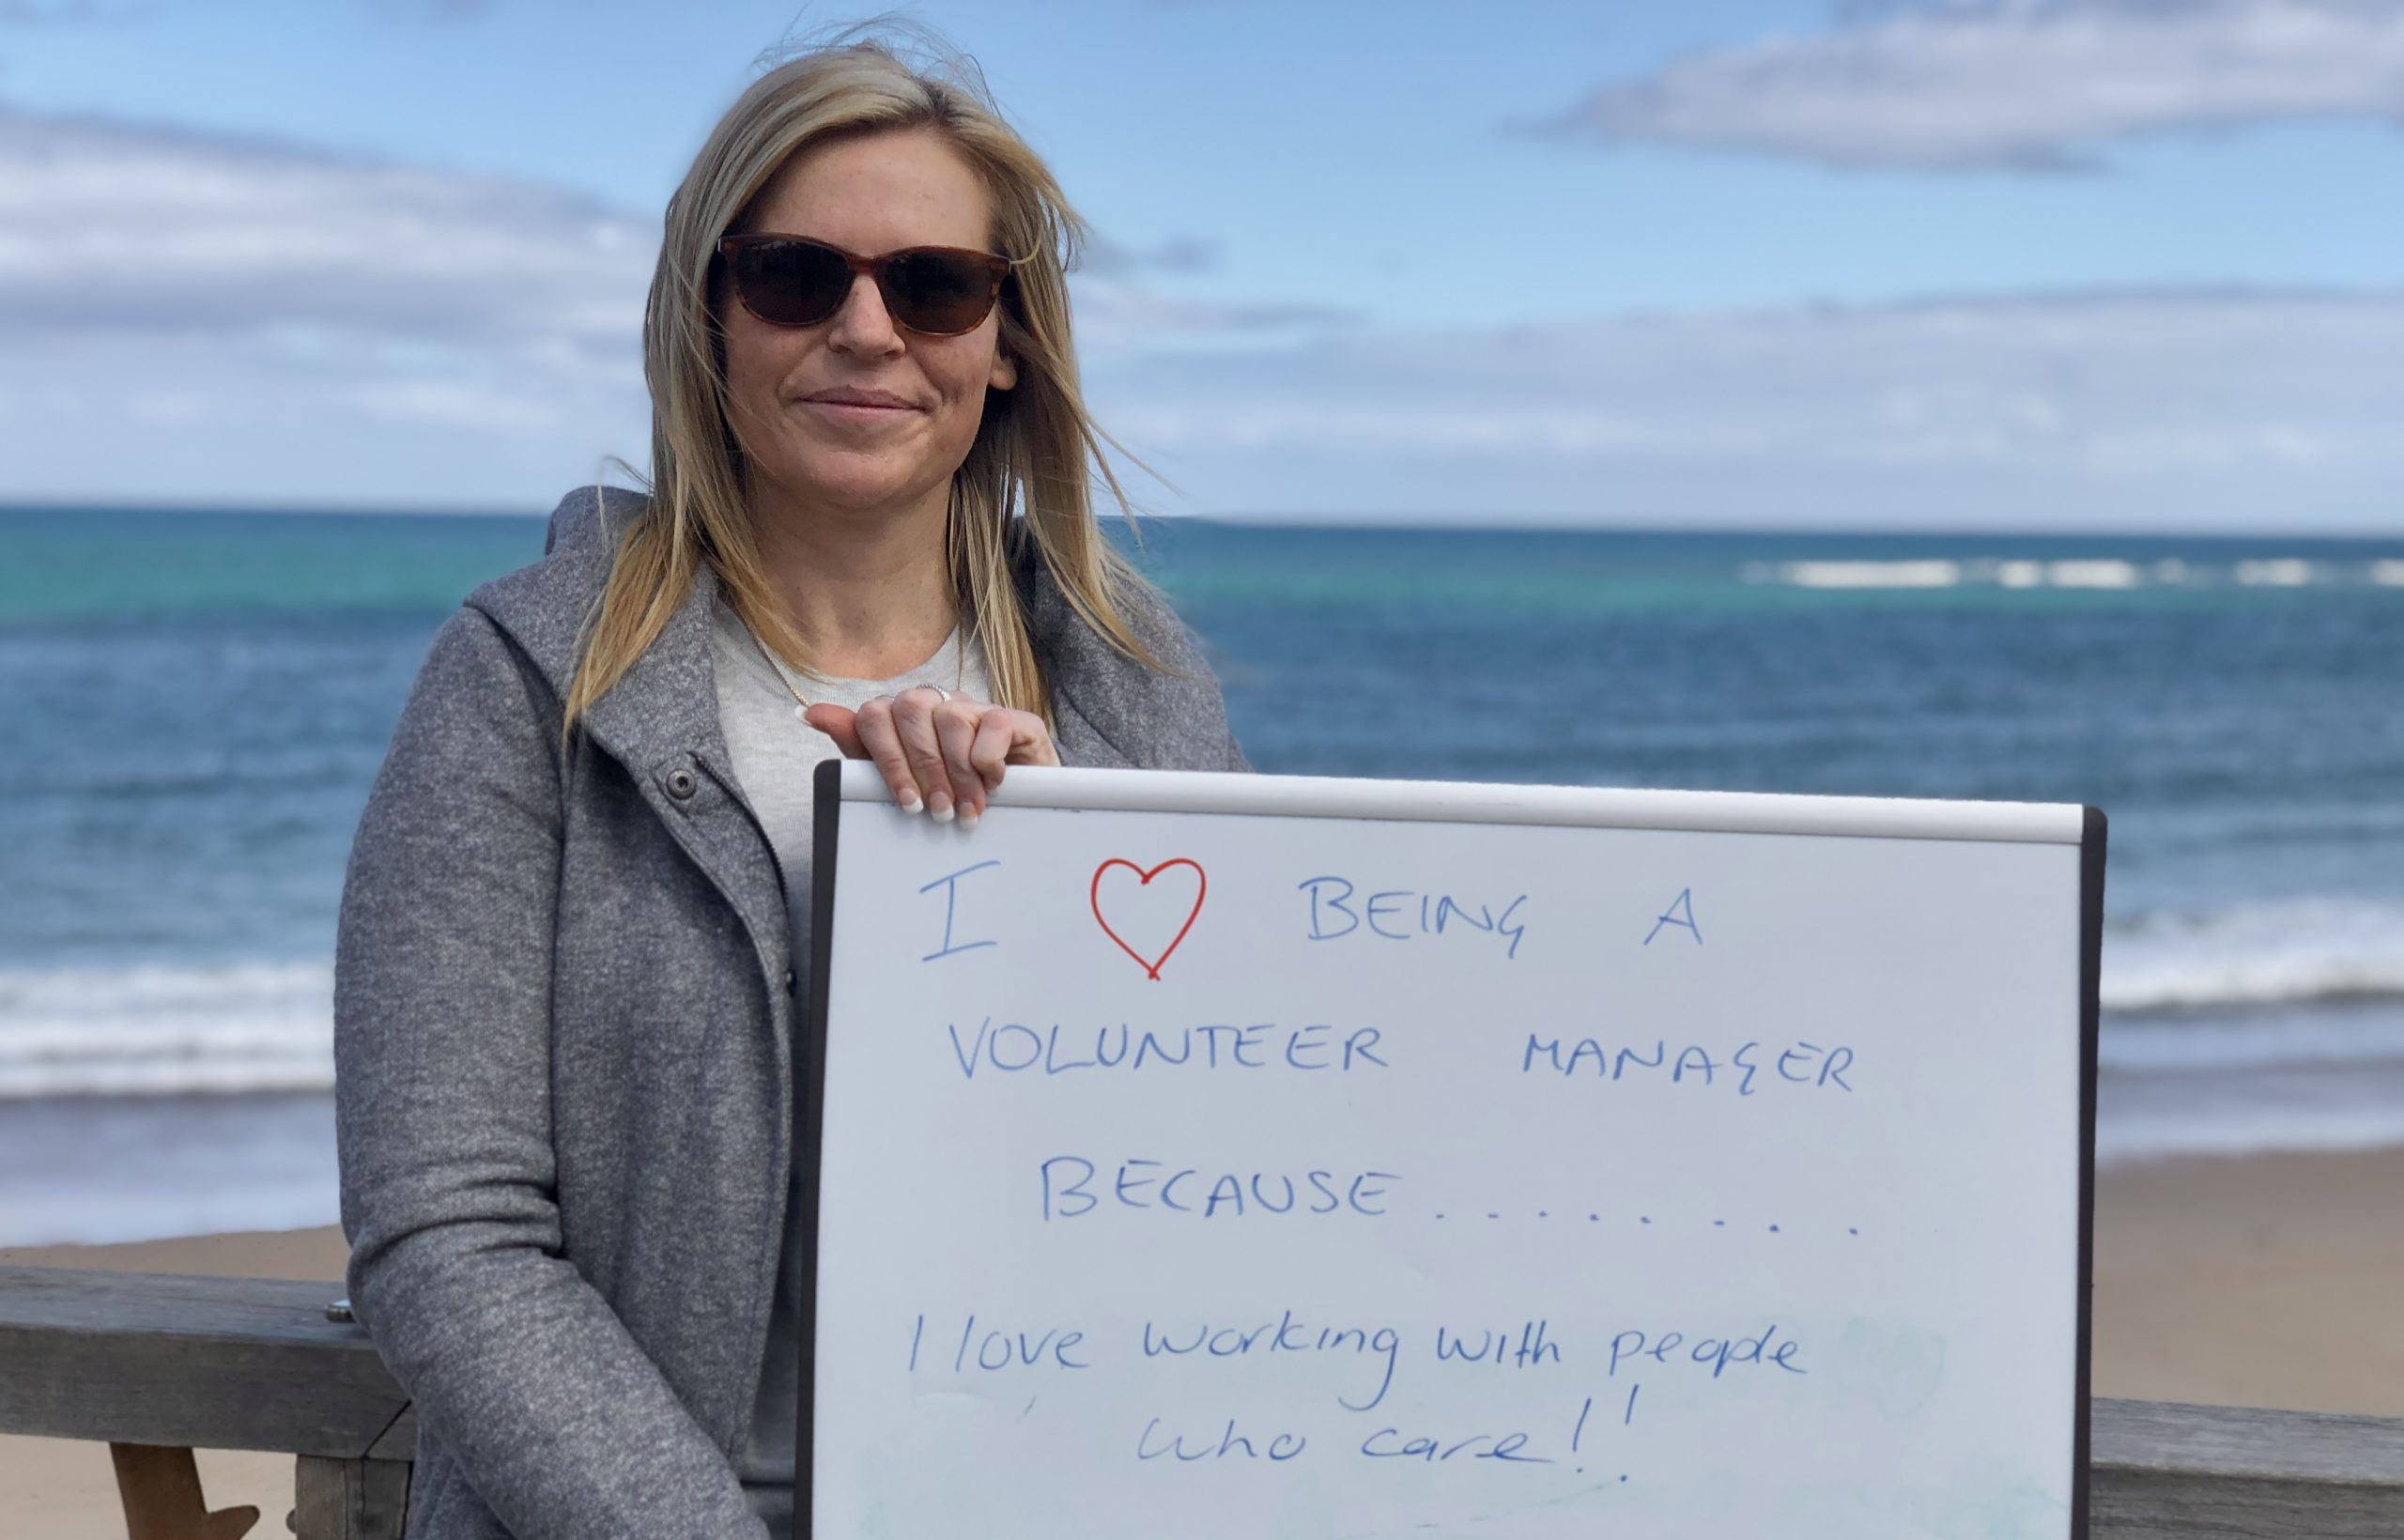 """A woman holds up a sign that reads """"I love being a volunteer manager because I love working with people who care""""."""